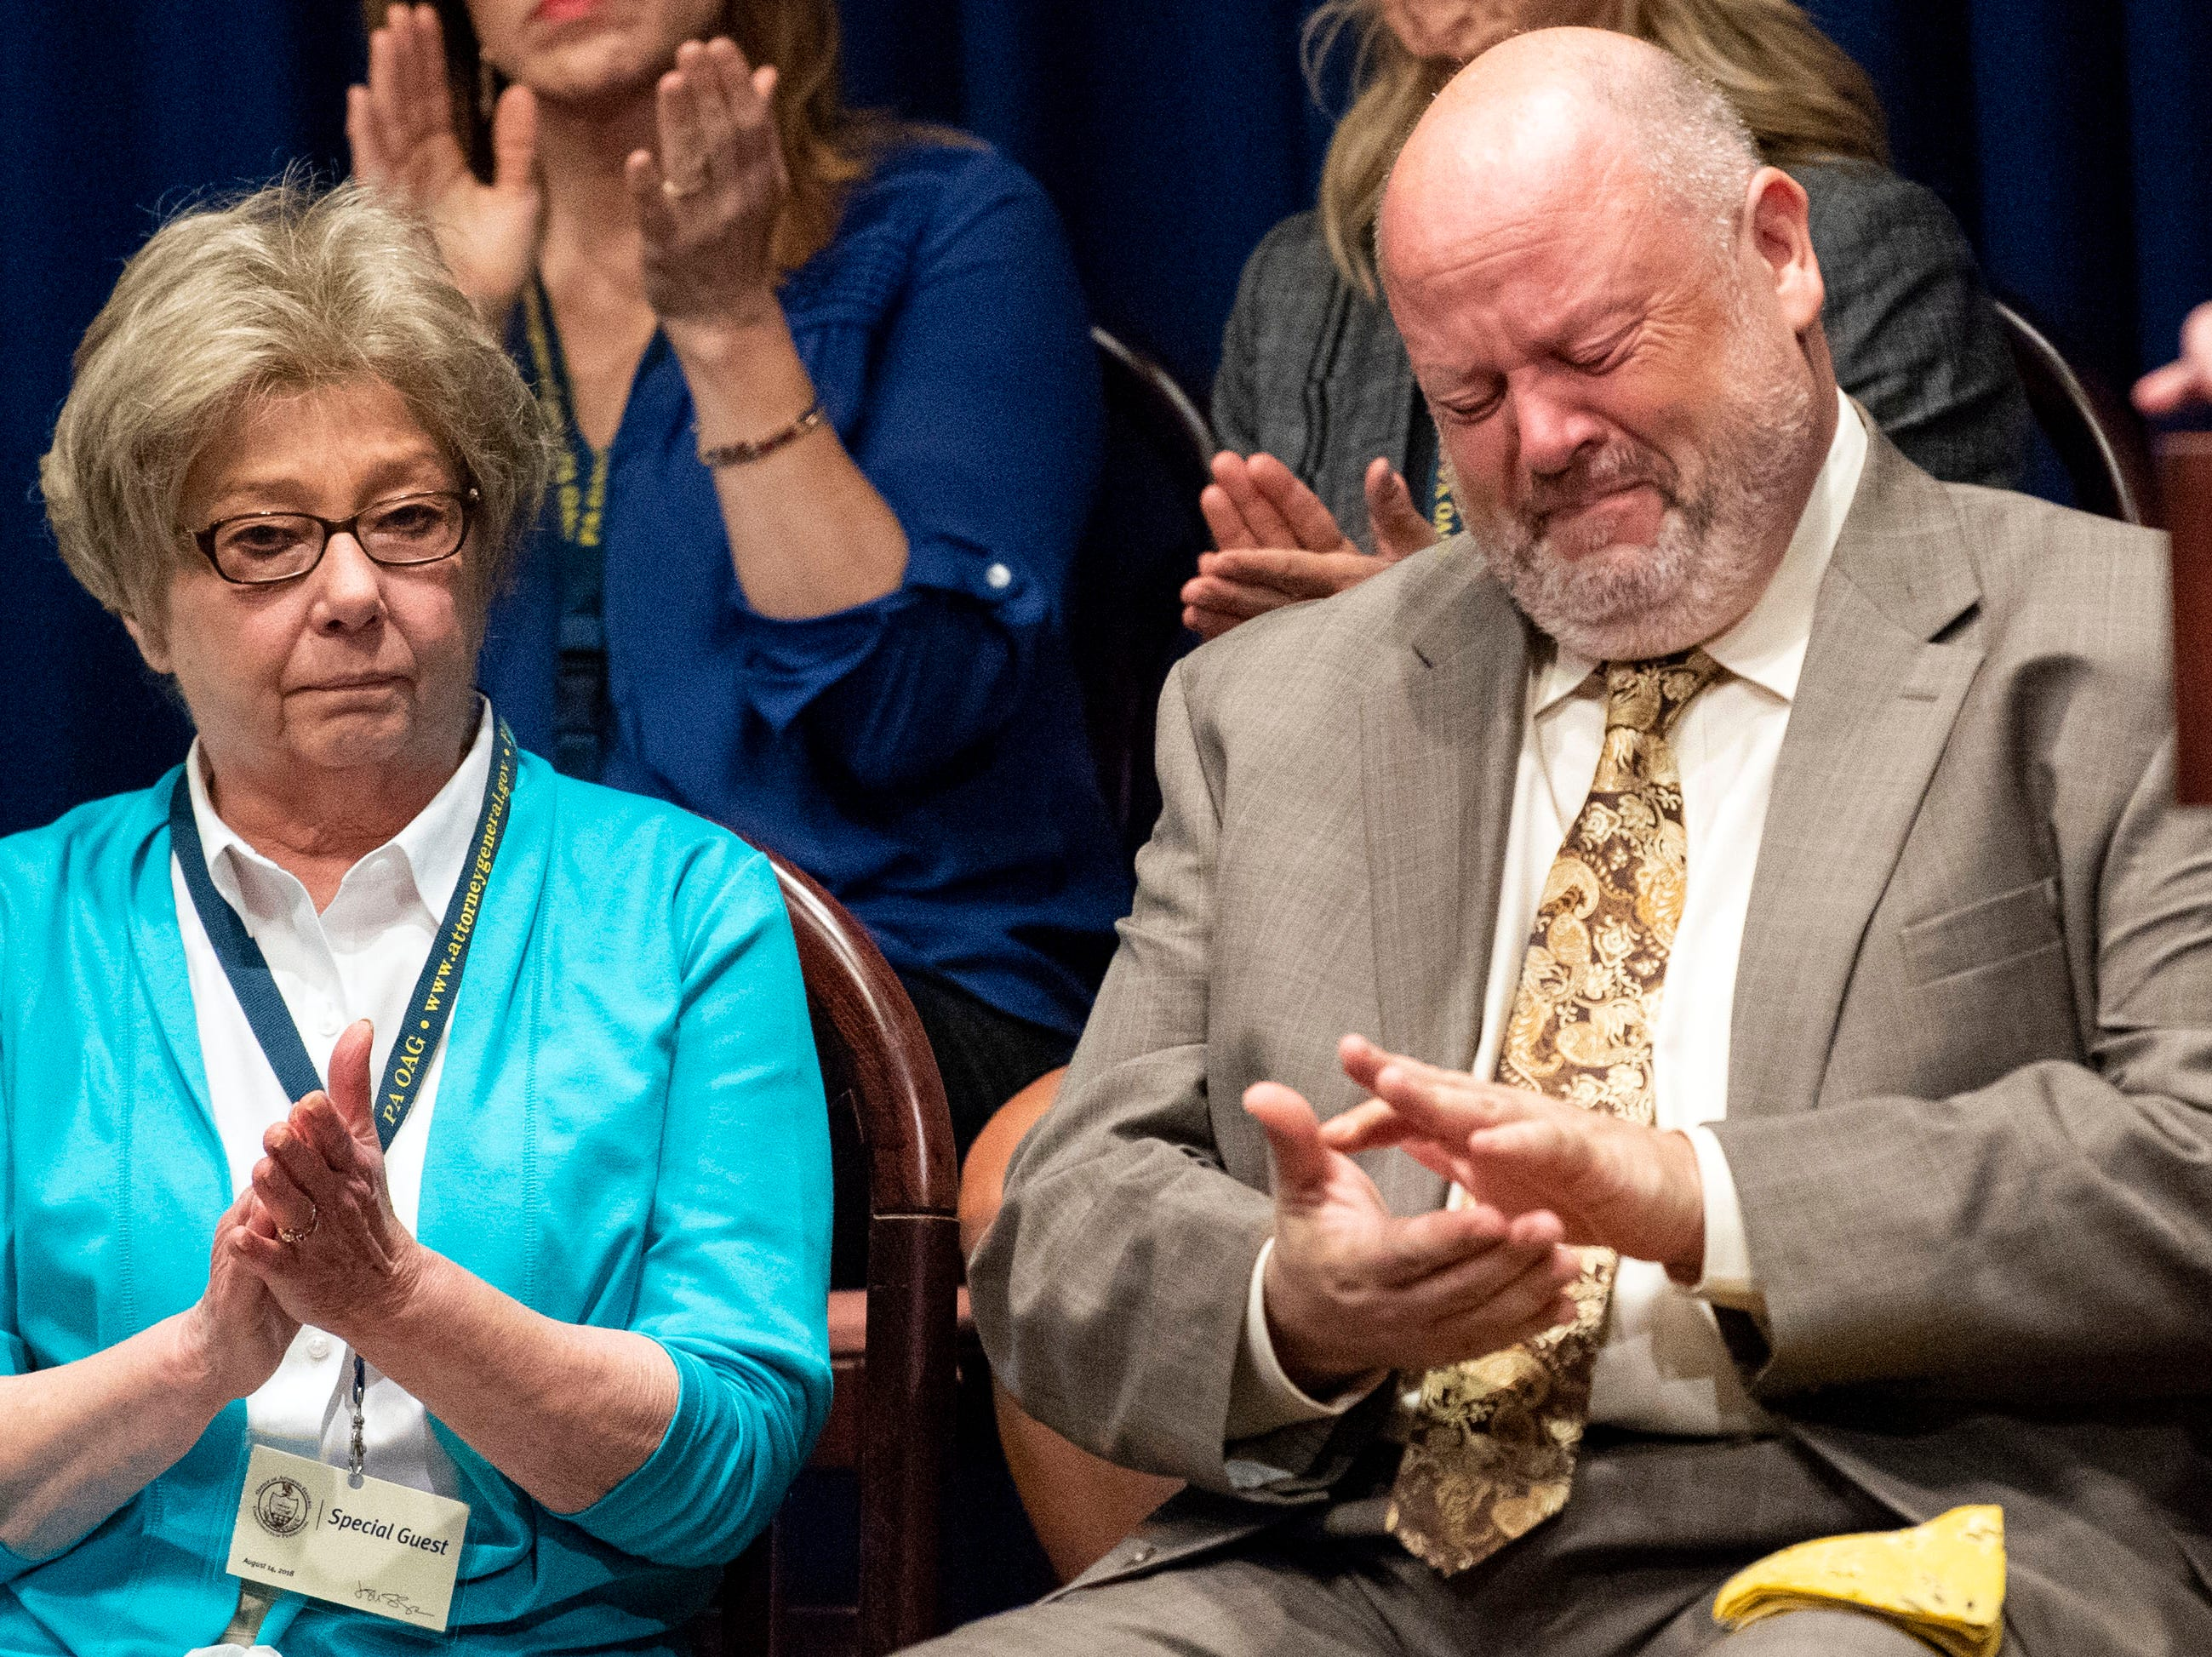 James Faluszczuk, right, who was abused in the Erie diocese, cries as Attorney General Josh Shapiro outlined the findings of the grand jury investigation into six catholic diocese in Pennsylvania, Tuesday, August 14, 2018. The grand jury's report detailed child sexual abuse and coverup by more than 300 clergy.